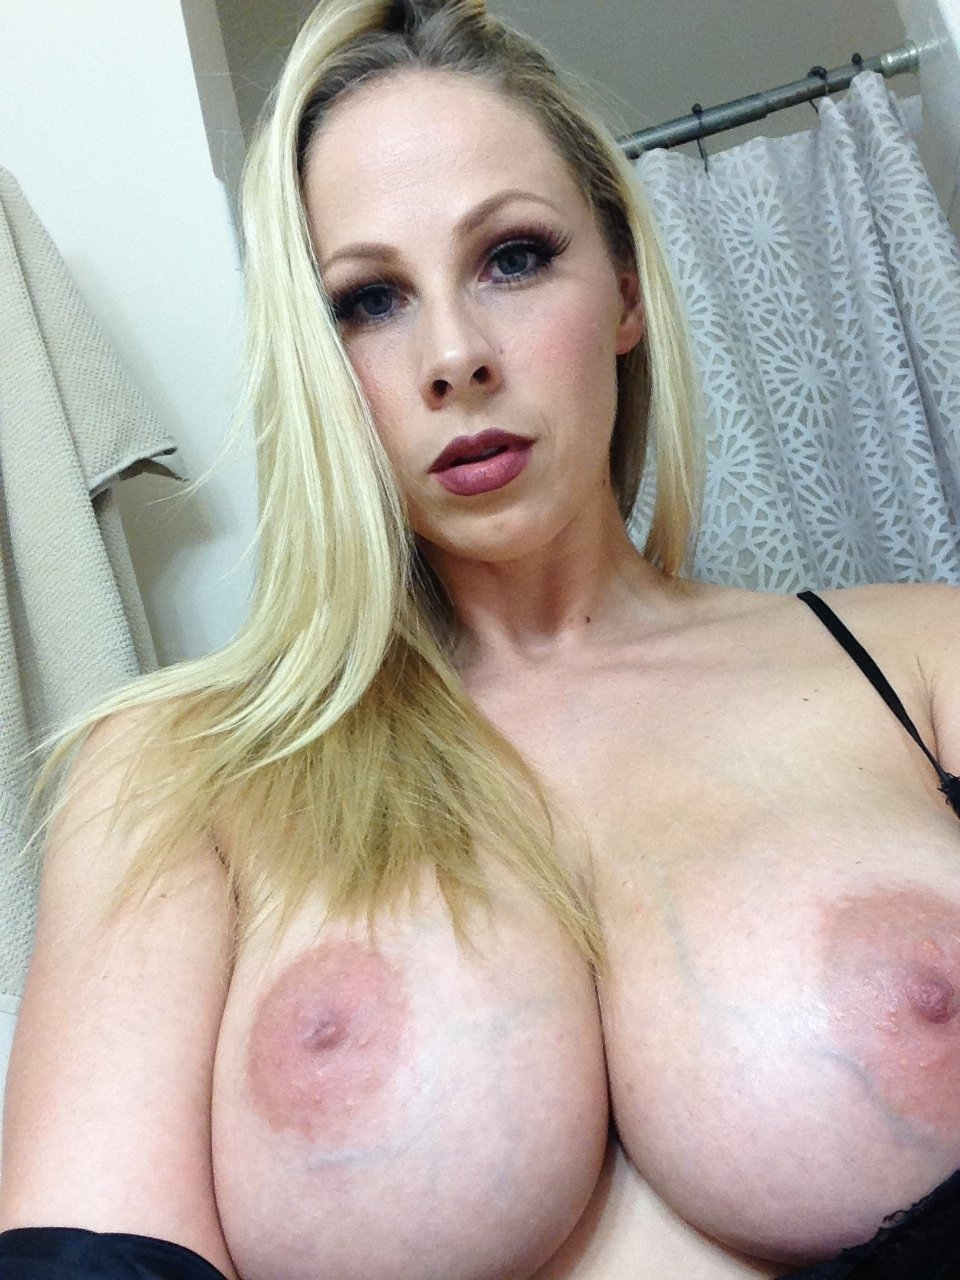 Gianna michaels snapchat